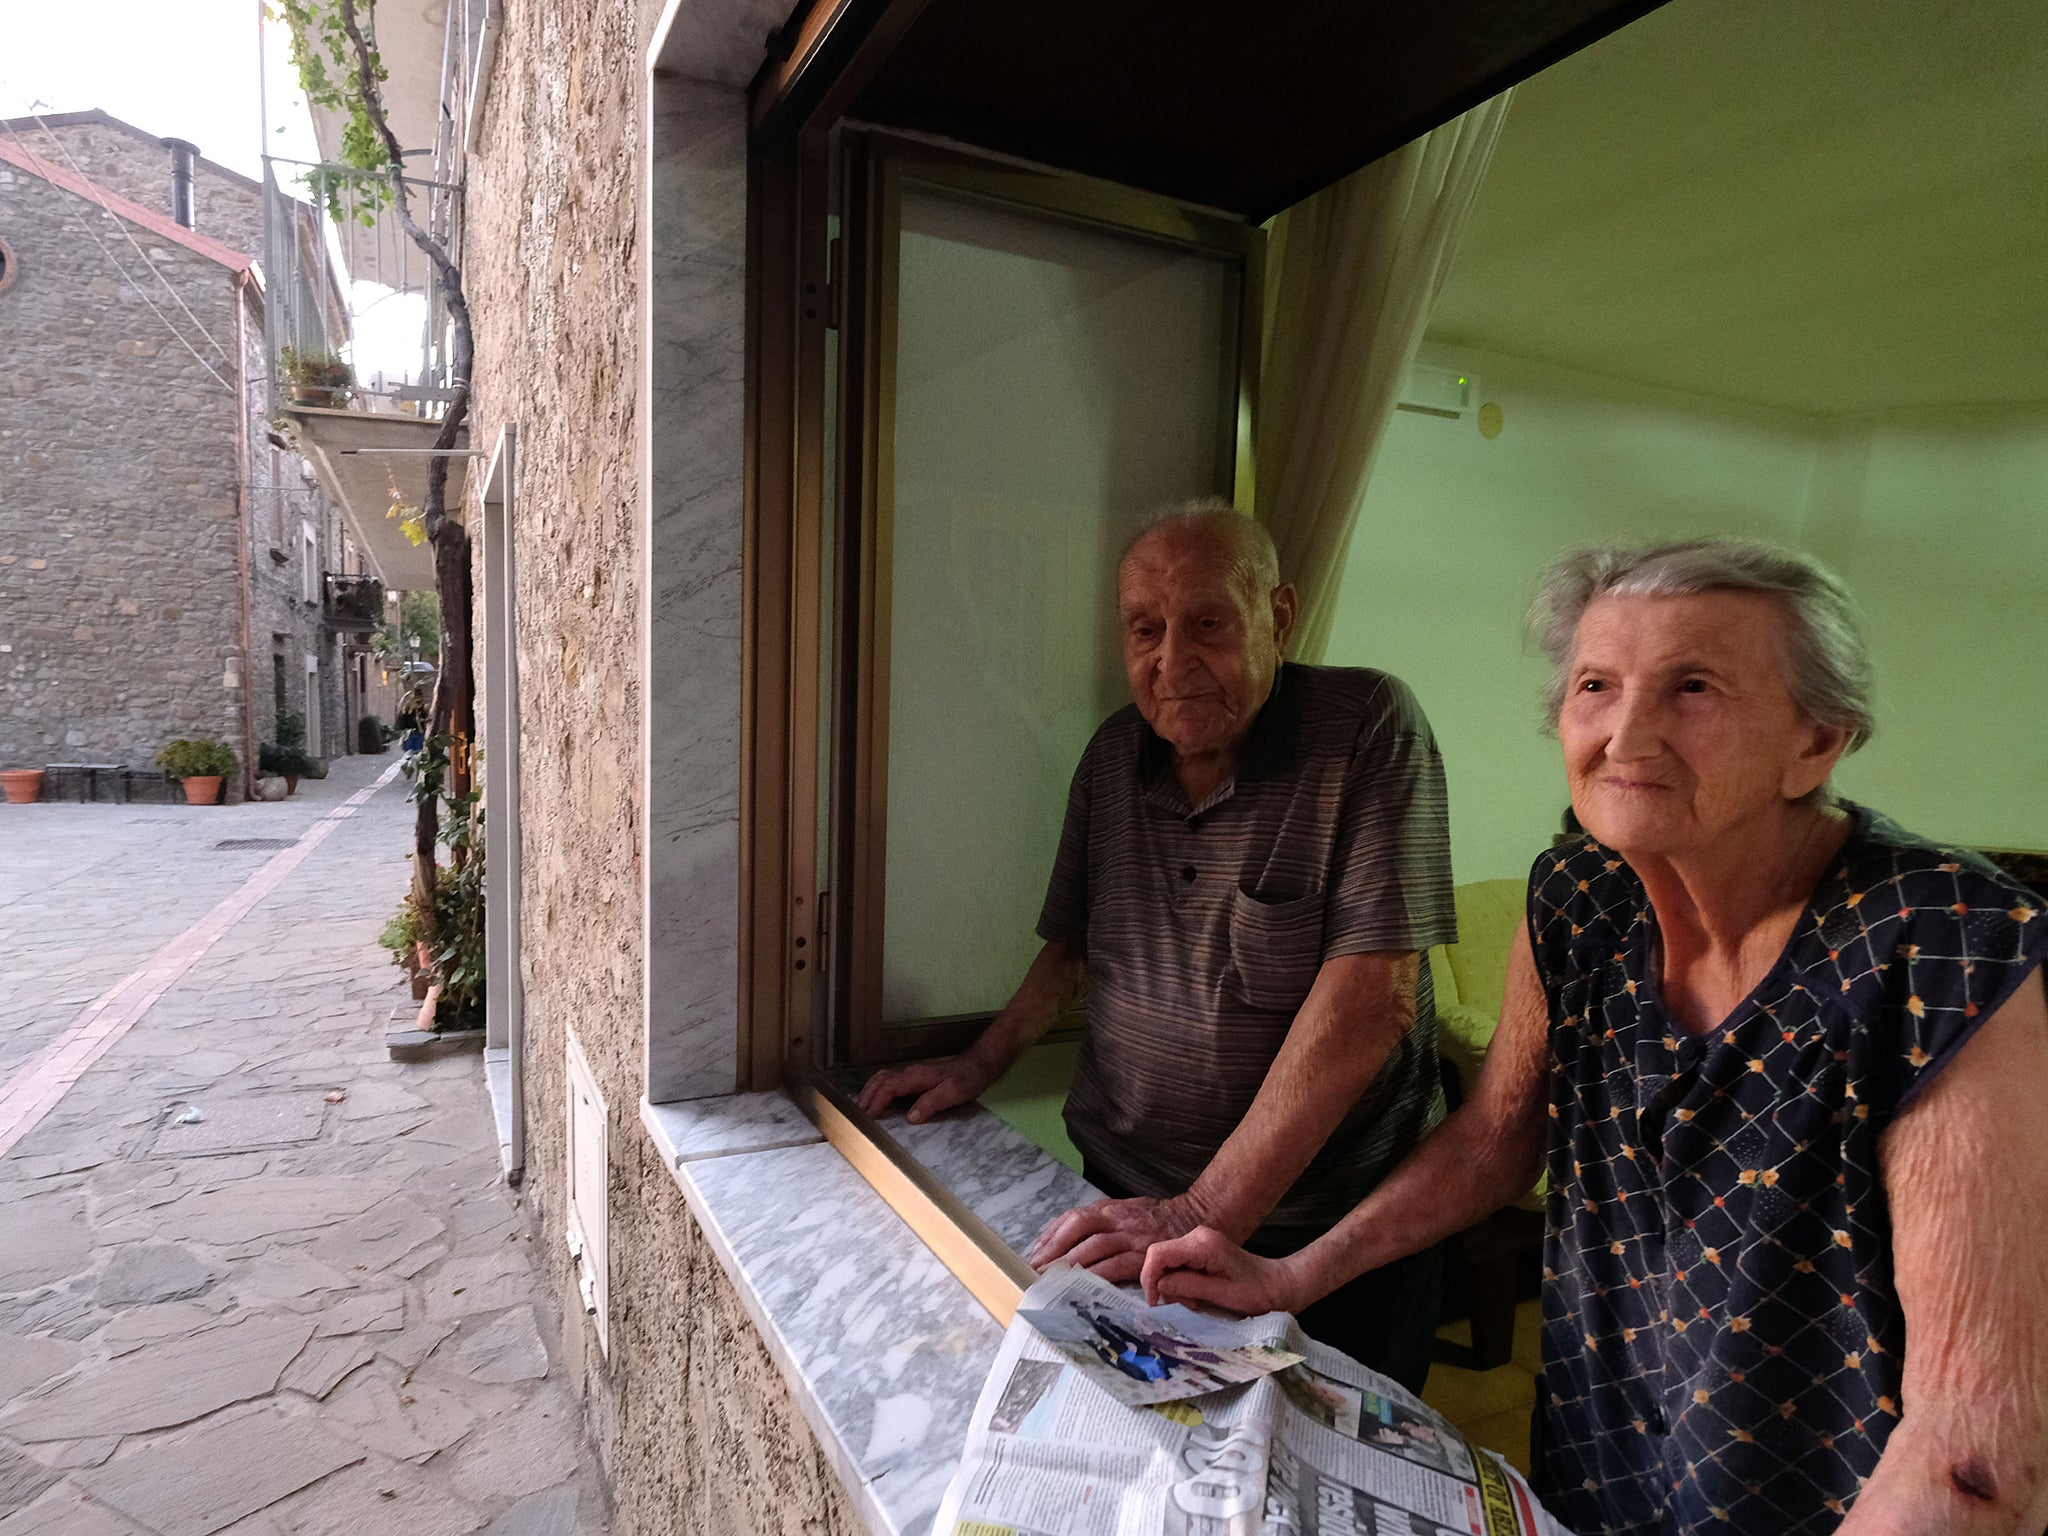 Scientists 'find key to longevity' in Italian village where one in 10 people live beyond 100 years